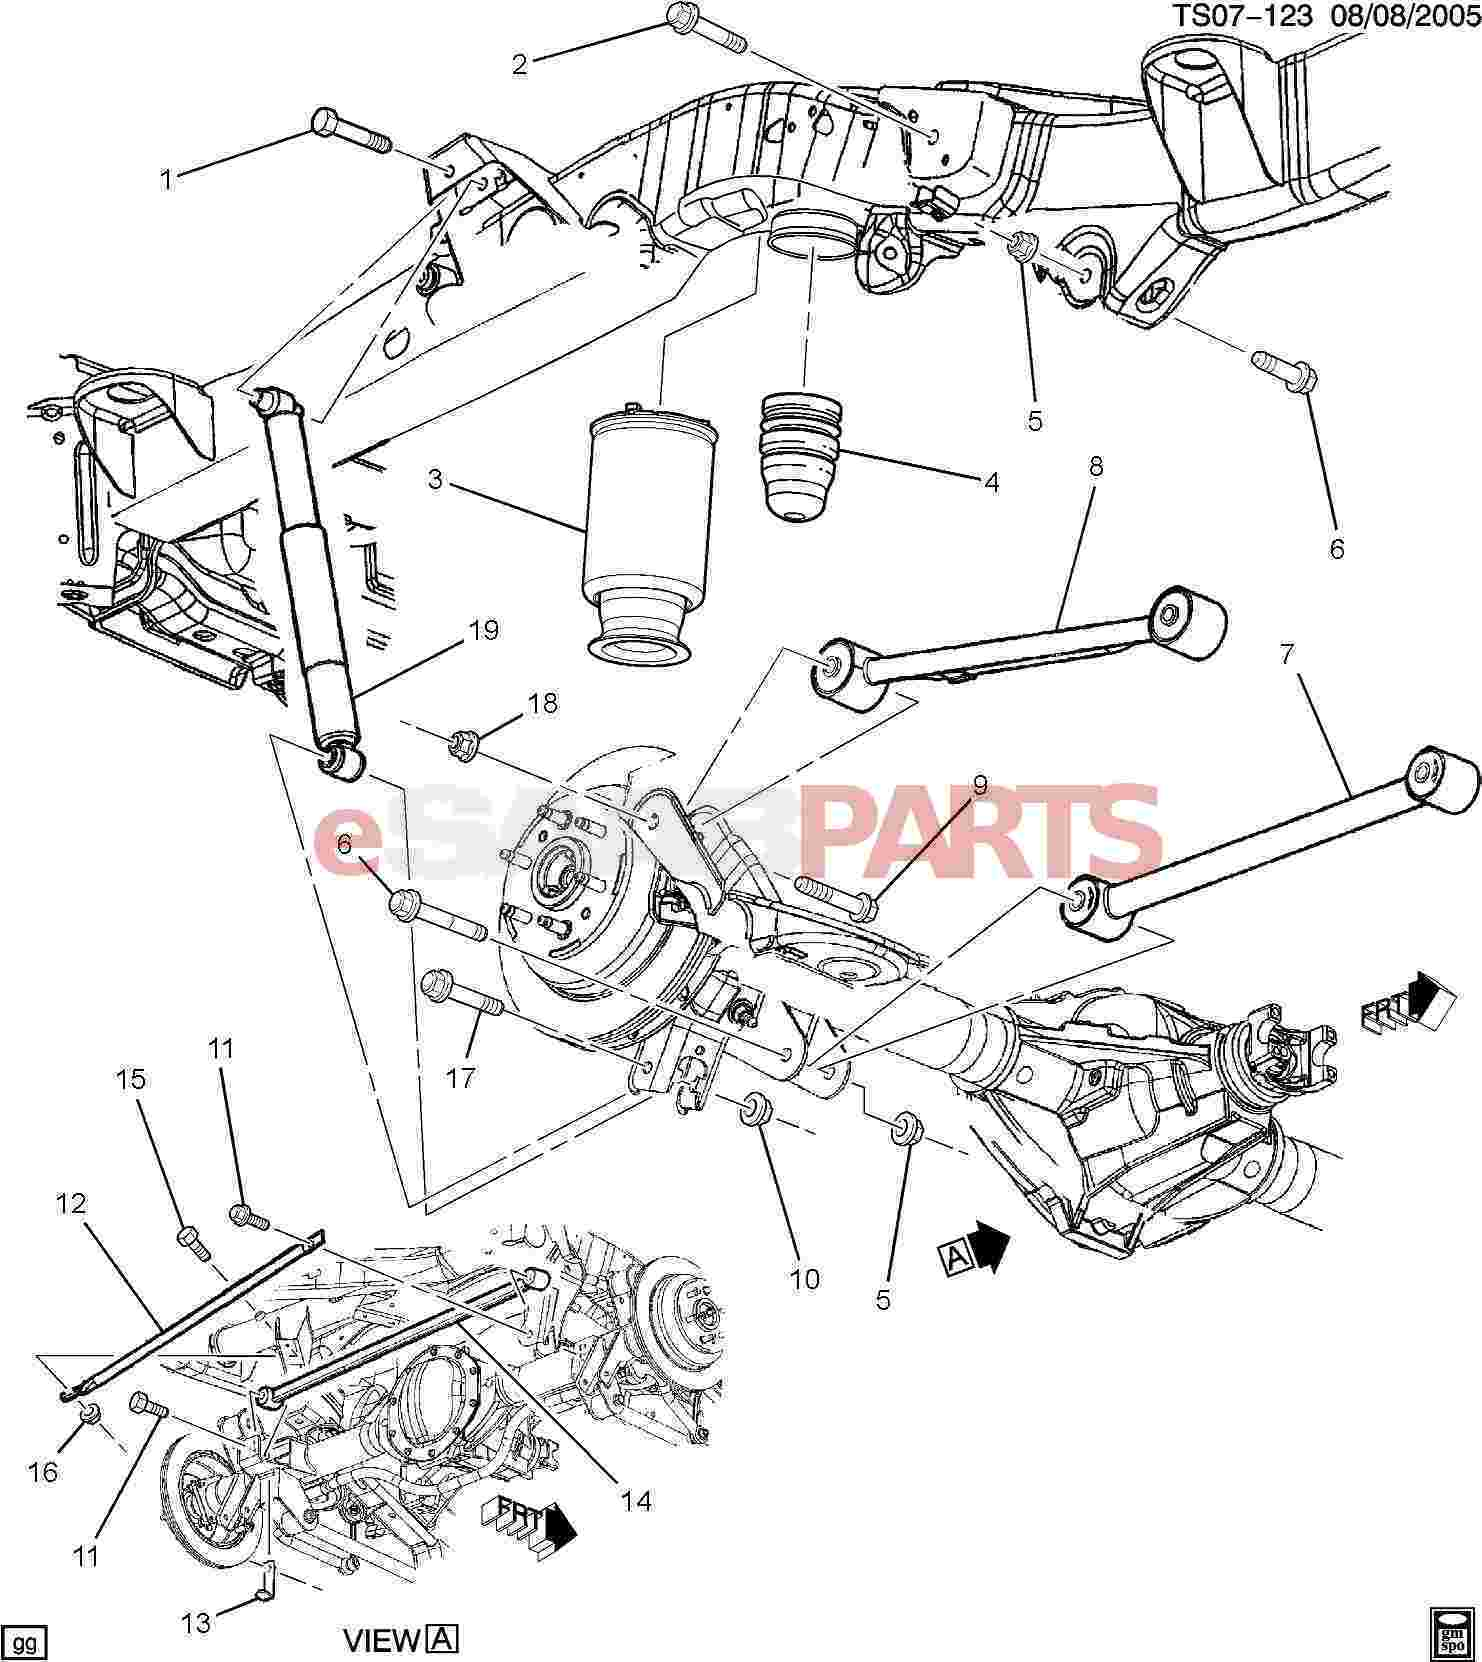 15125539 saab shock absorber rear genuine saab parts from rh esaabparts com saab 9000 front suspension diagram saab 93 suspension diagram